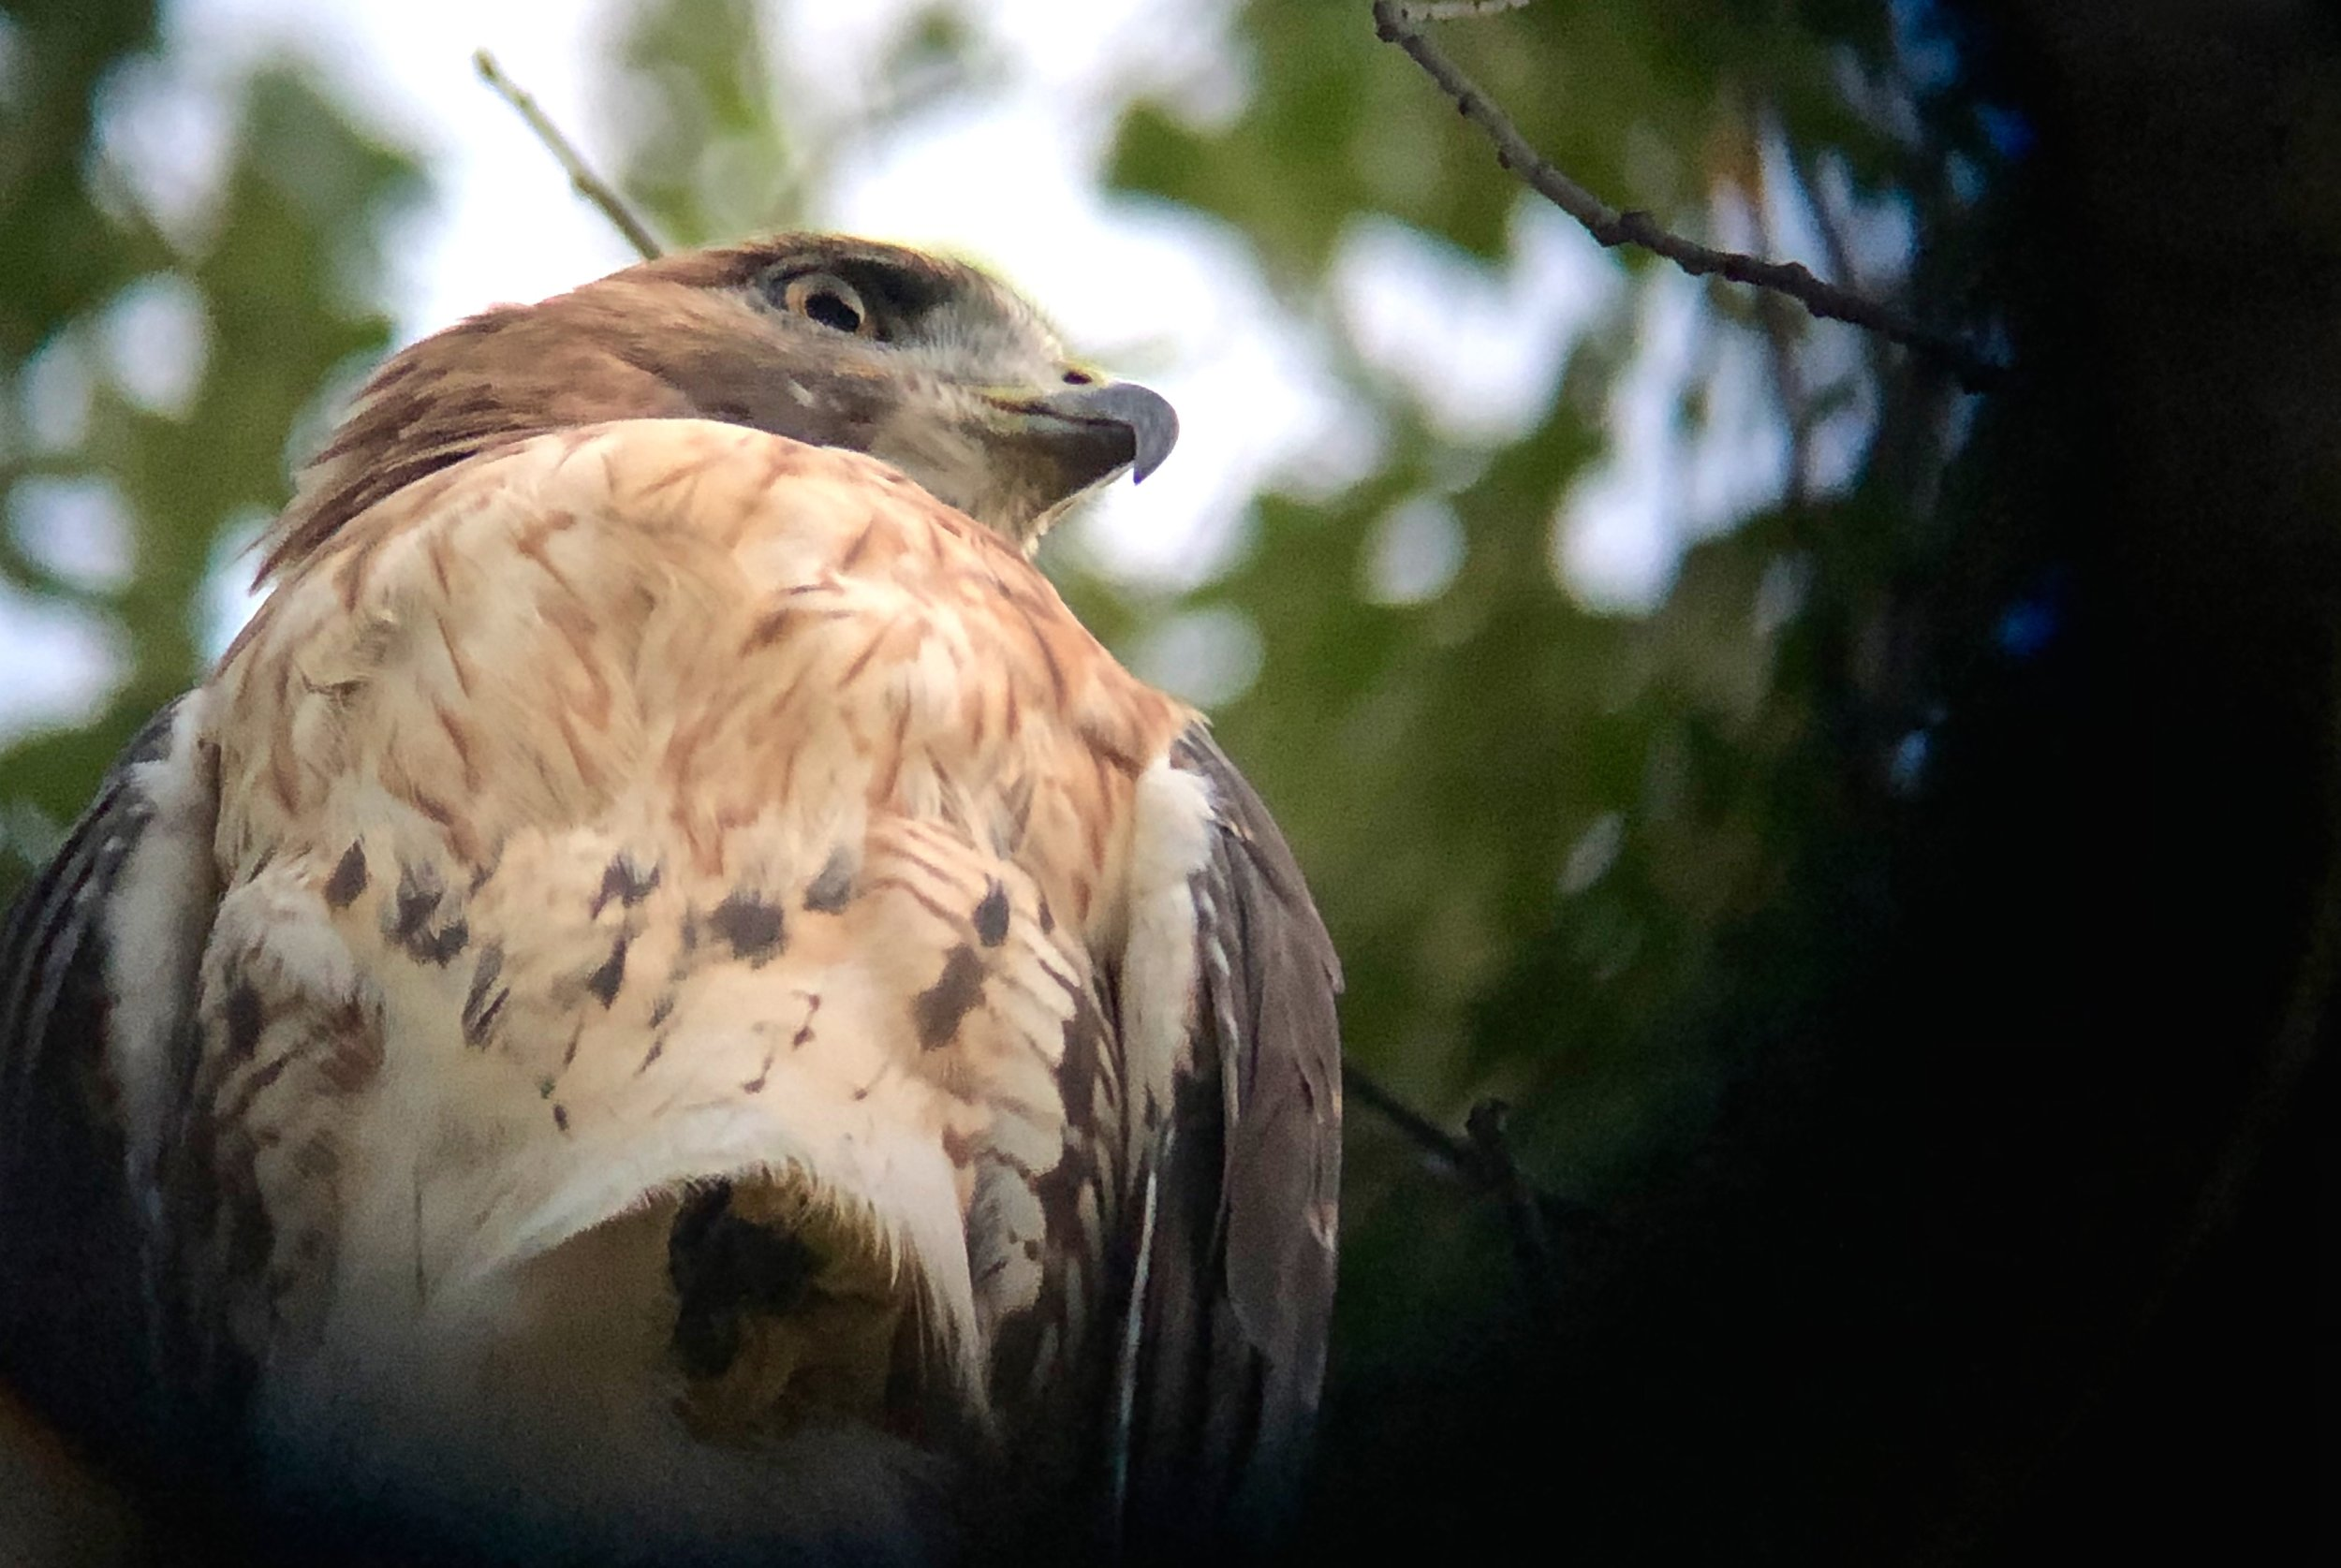 This same Red-tailed Hawk is shown in the video later in the blog. Photo taken at the Woodlands by Toribird.